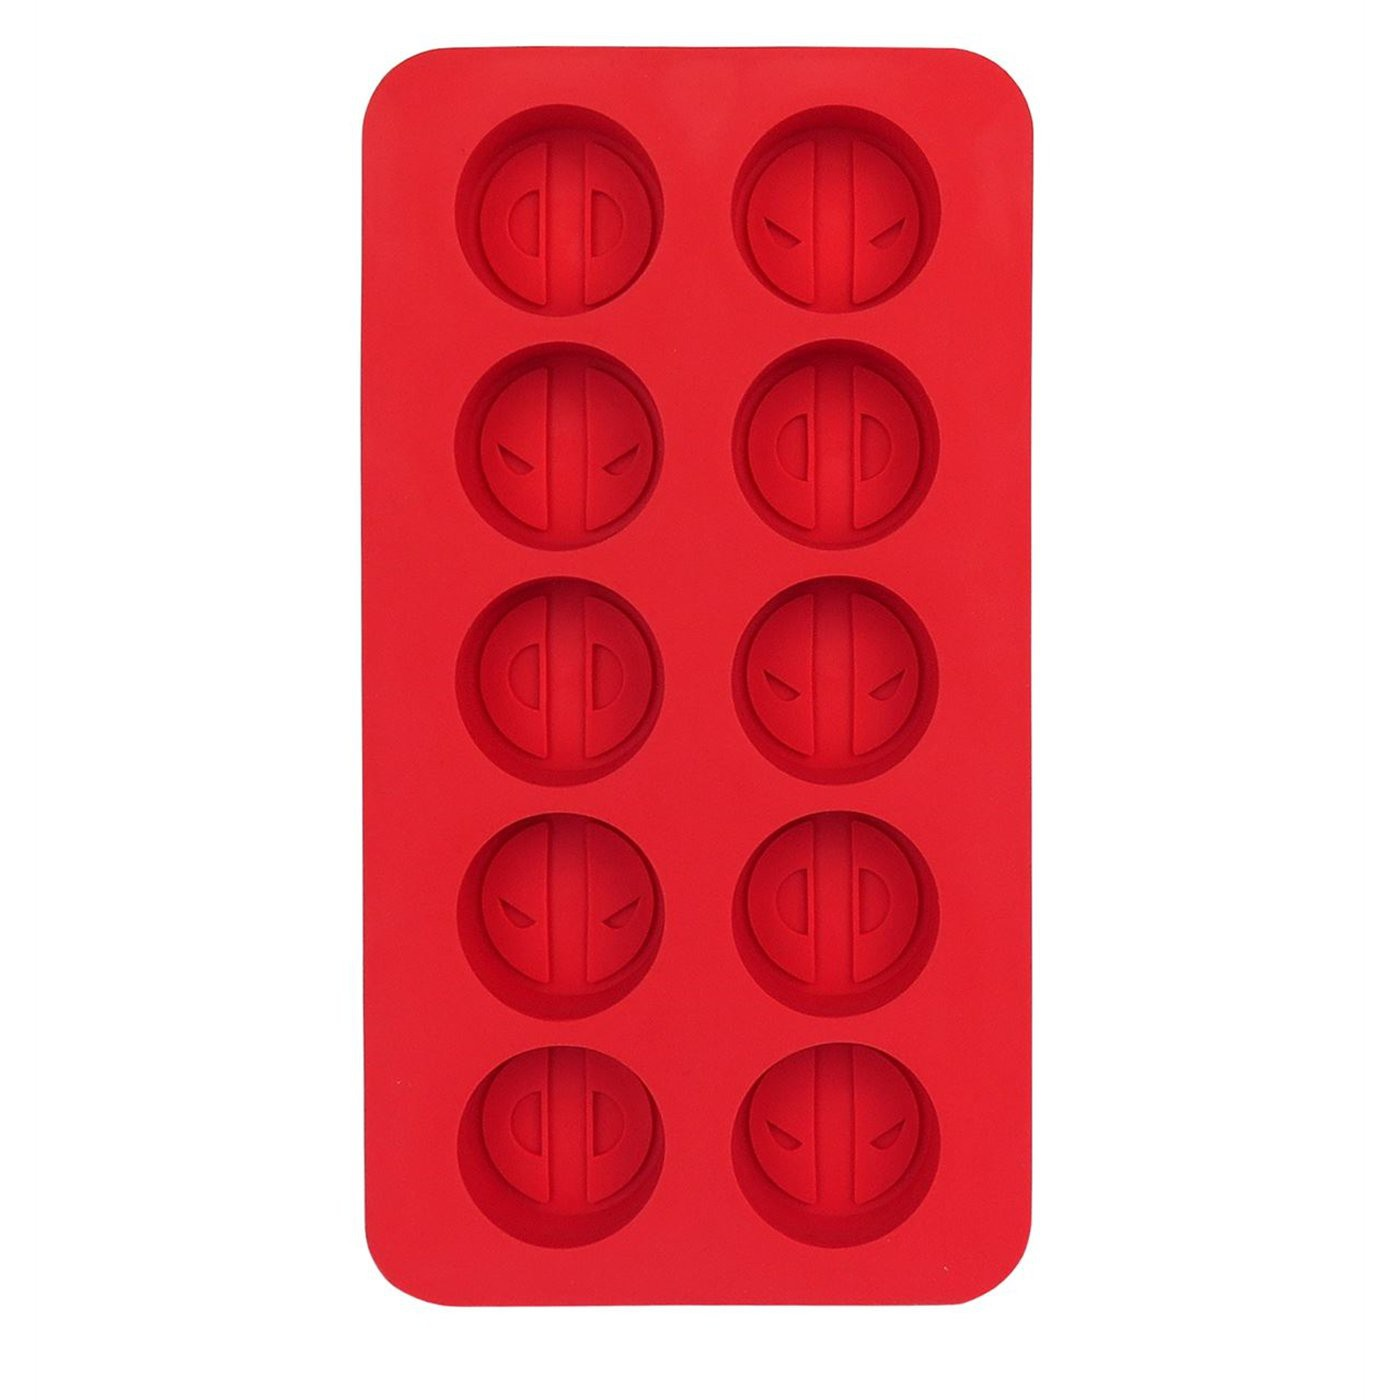 Deadpool Ice Cube Tray of Awesomeness